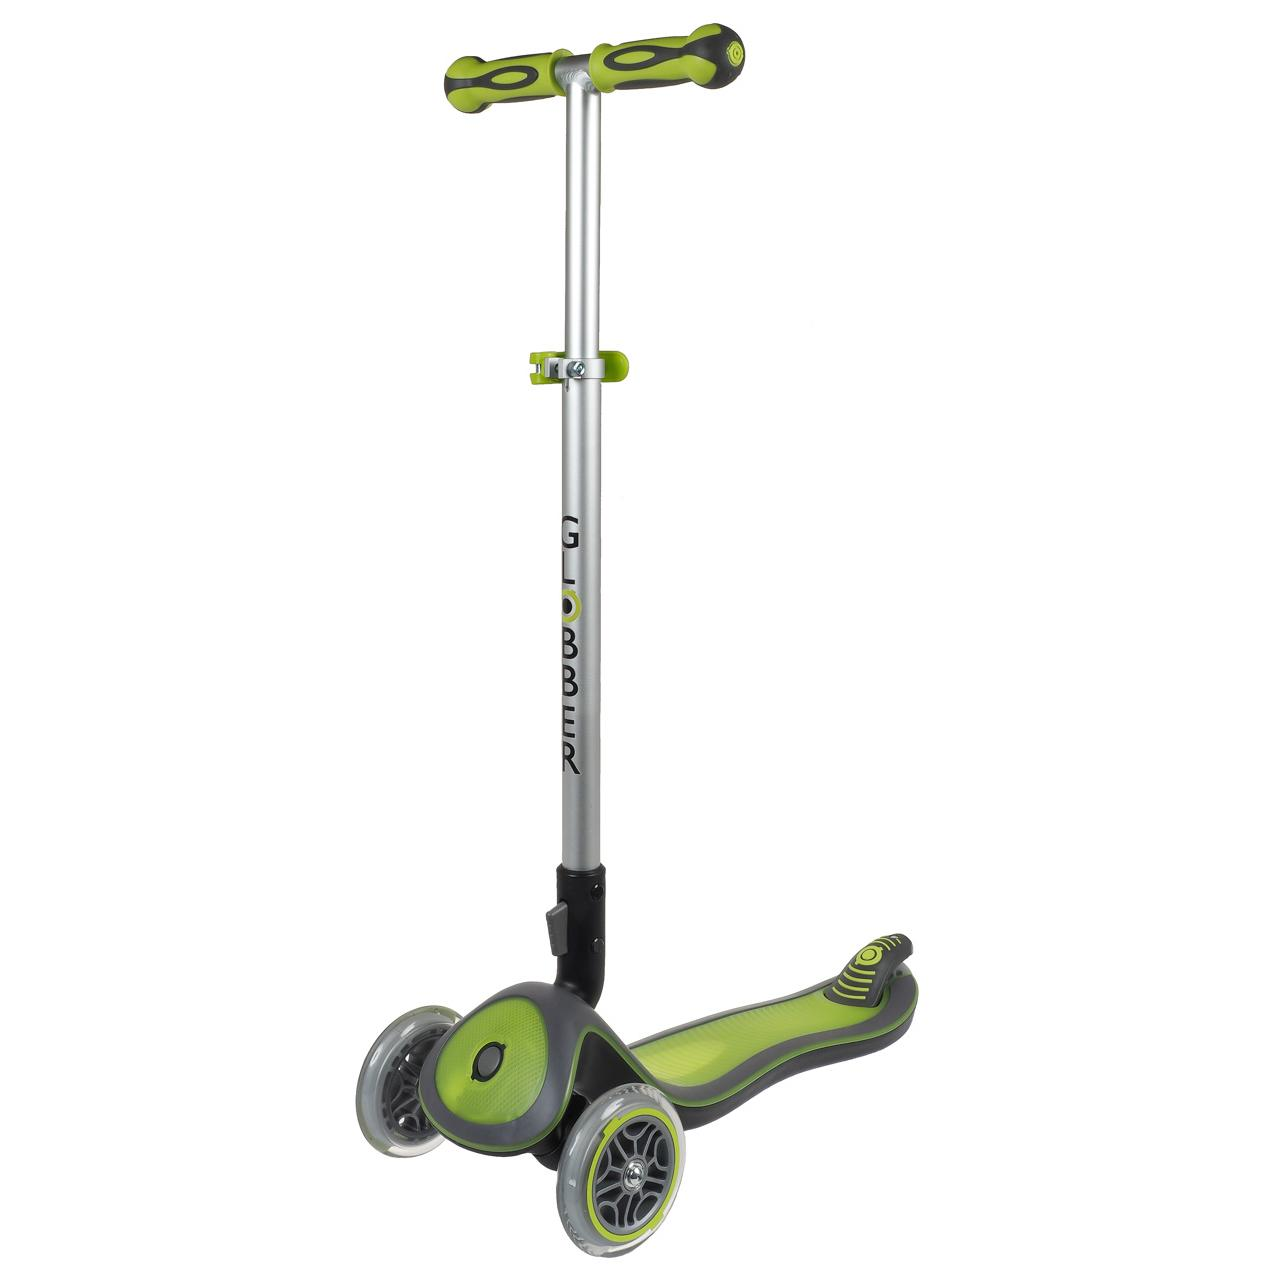 Scooter-Leisure-Glober-Myfree-Elite-Lime-Green-70959-New